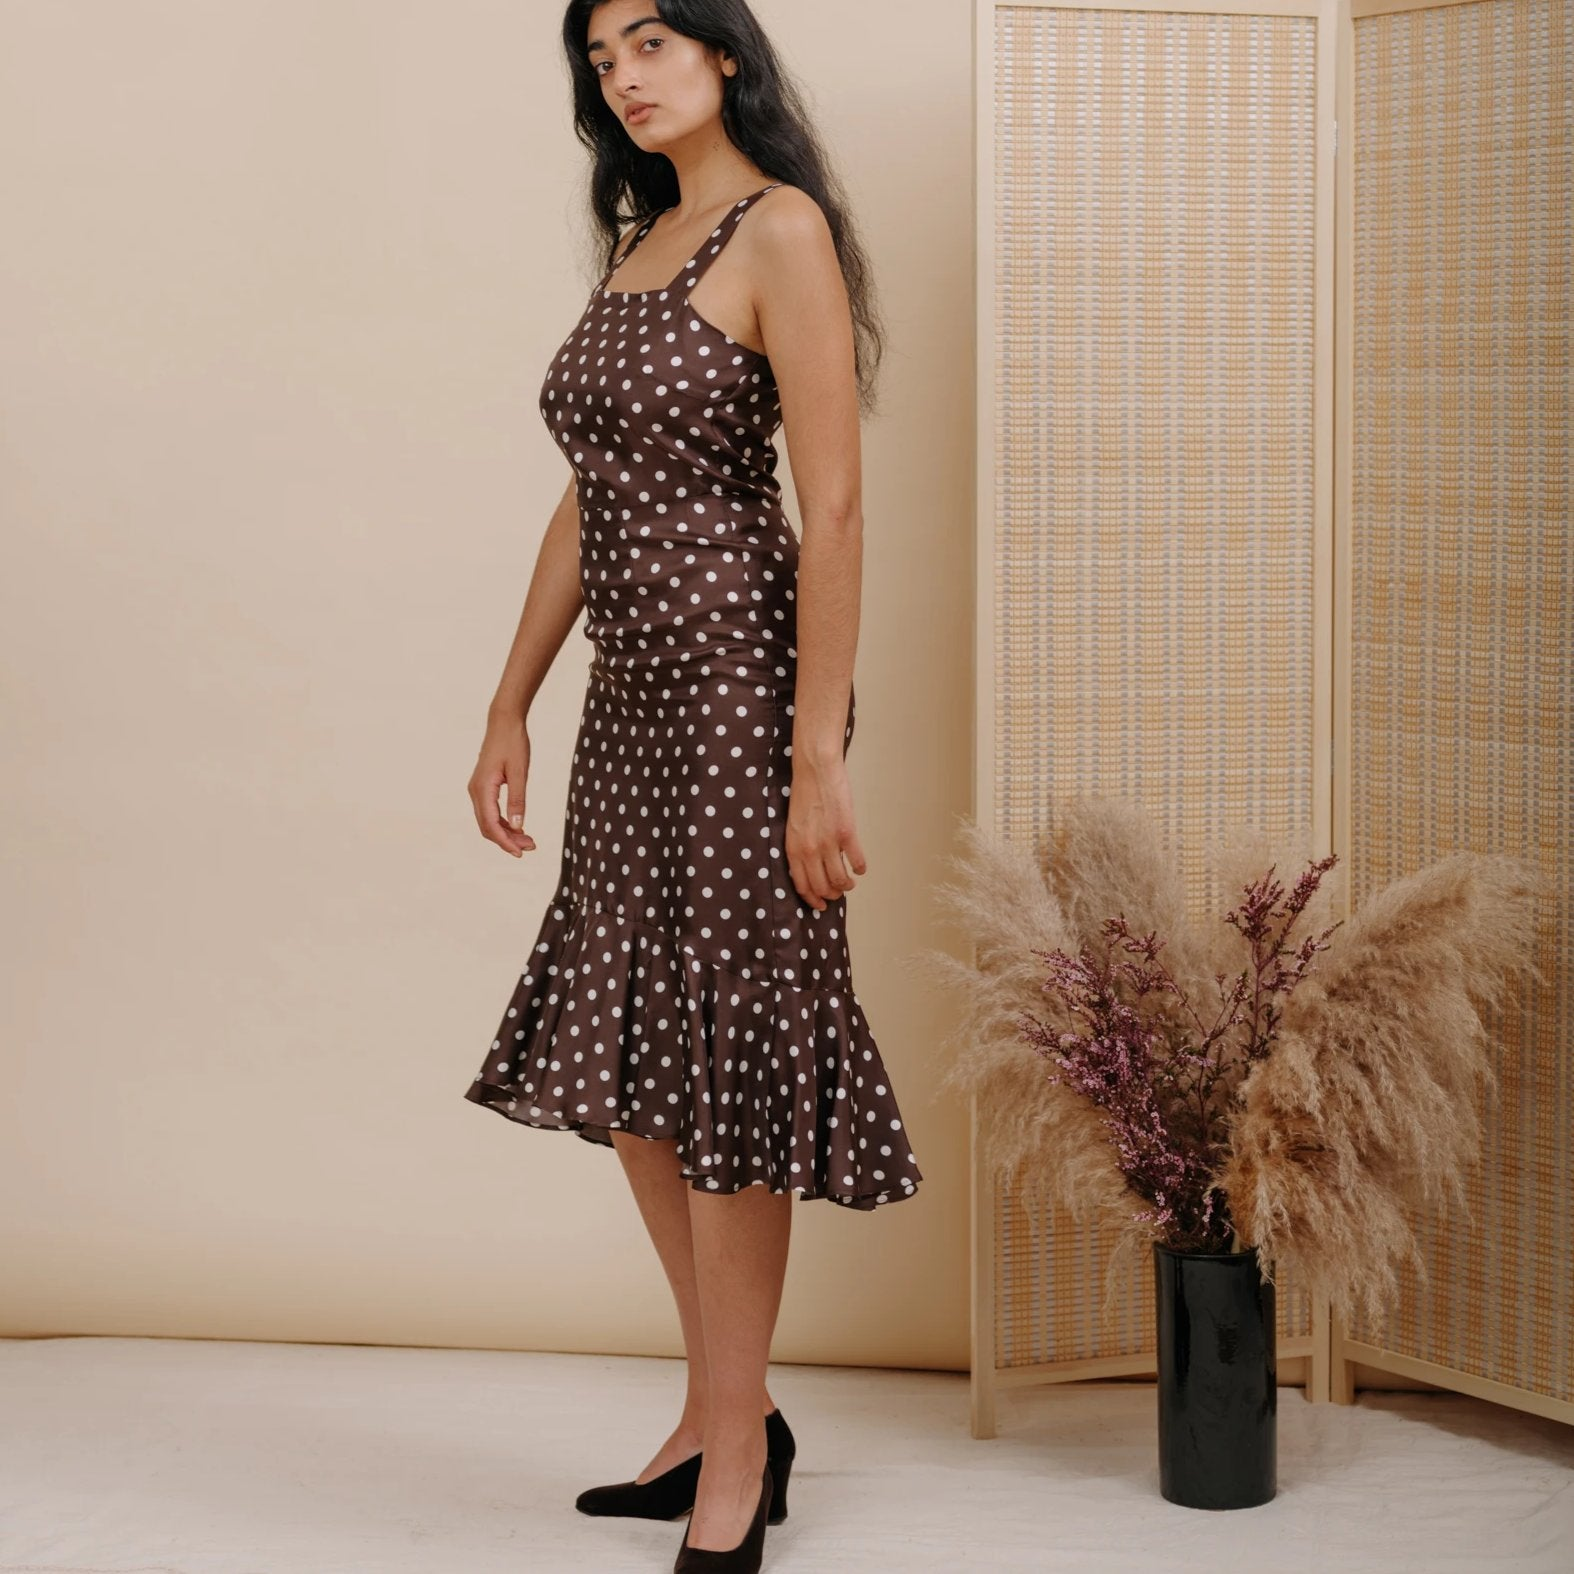 Flo Dress in Brown Polka Dot Silk